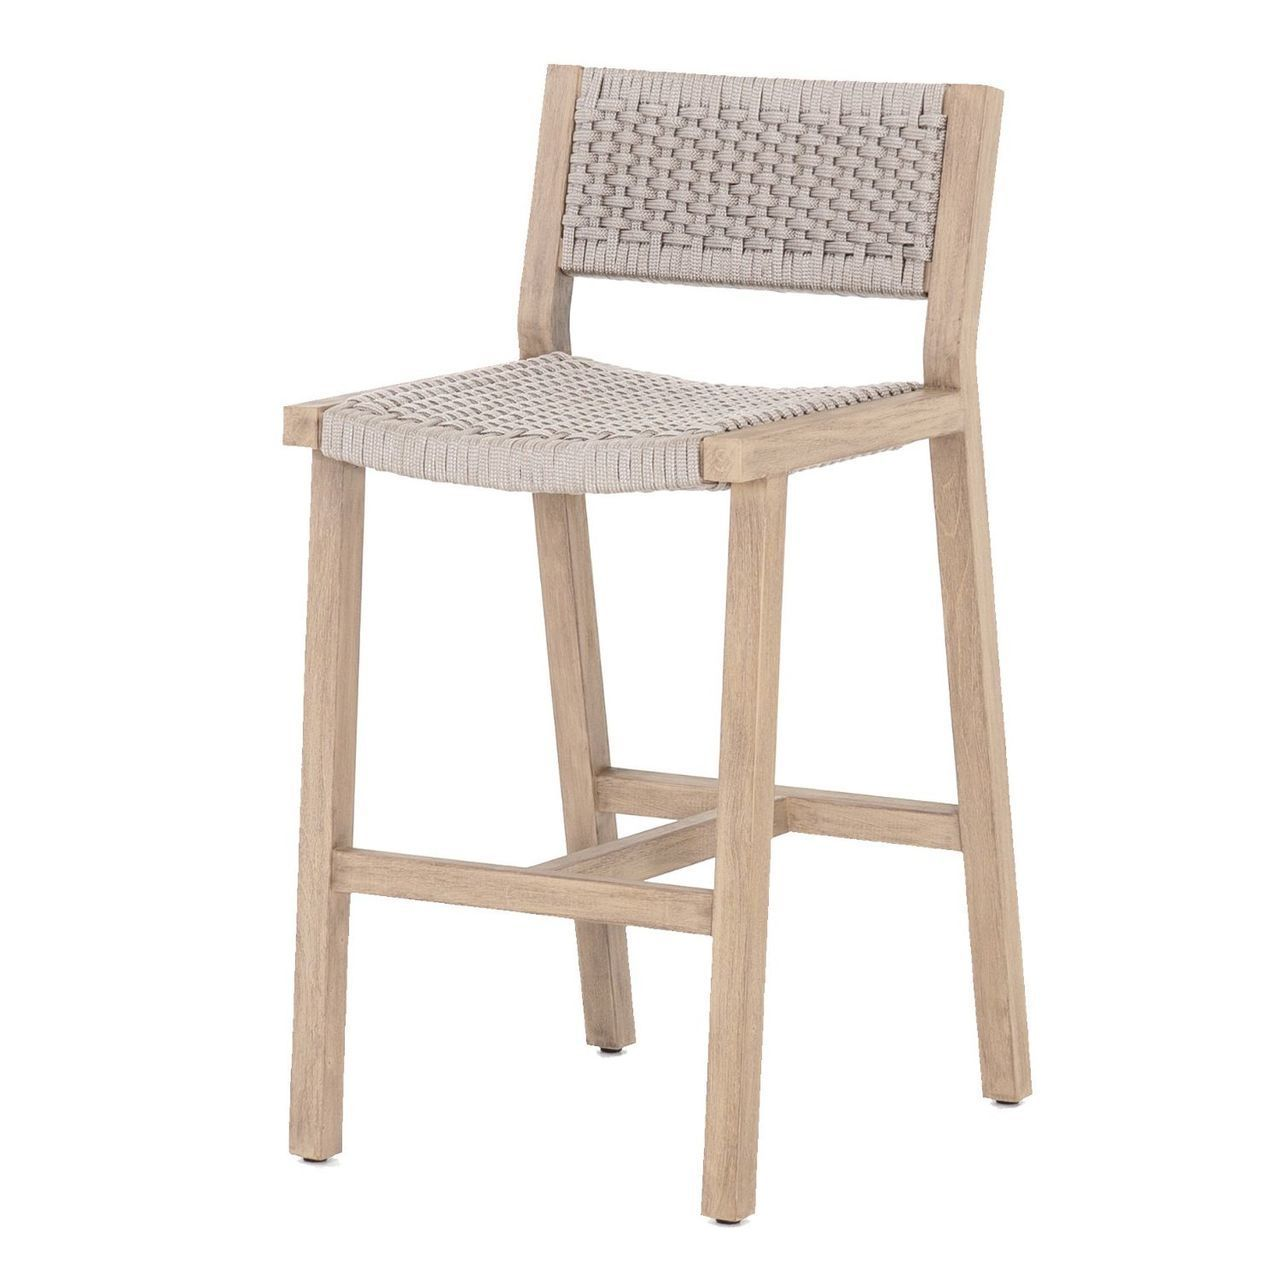 Delano Natural Teak Outdoor Rope Bar Stool Outdoor Bar Stools